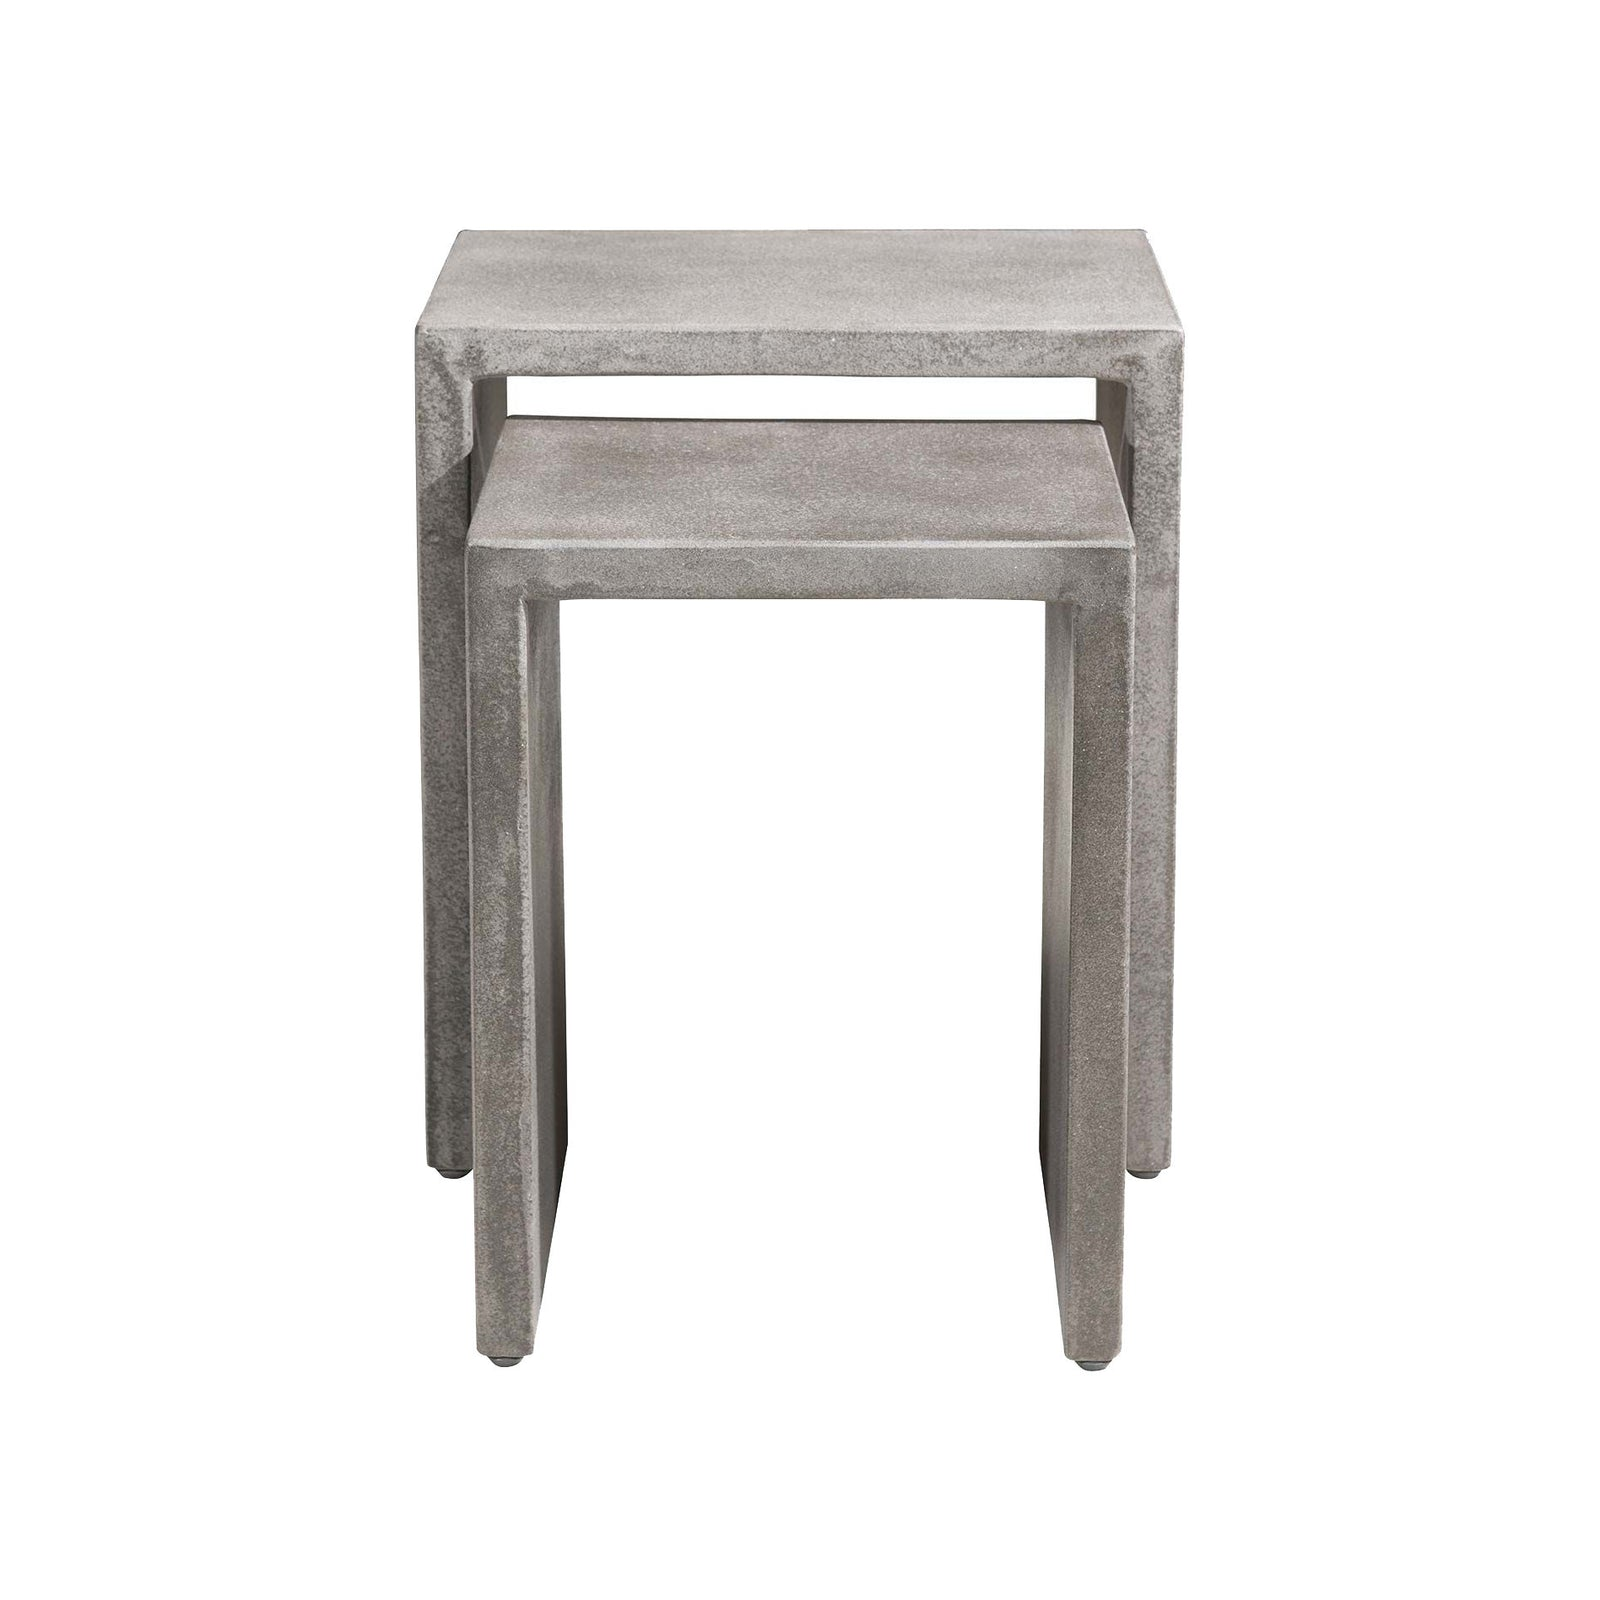 Cement Nesting Tables